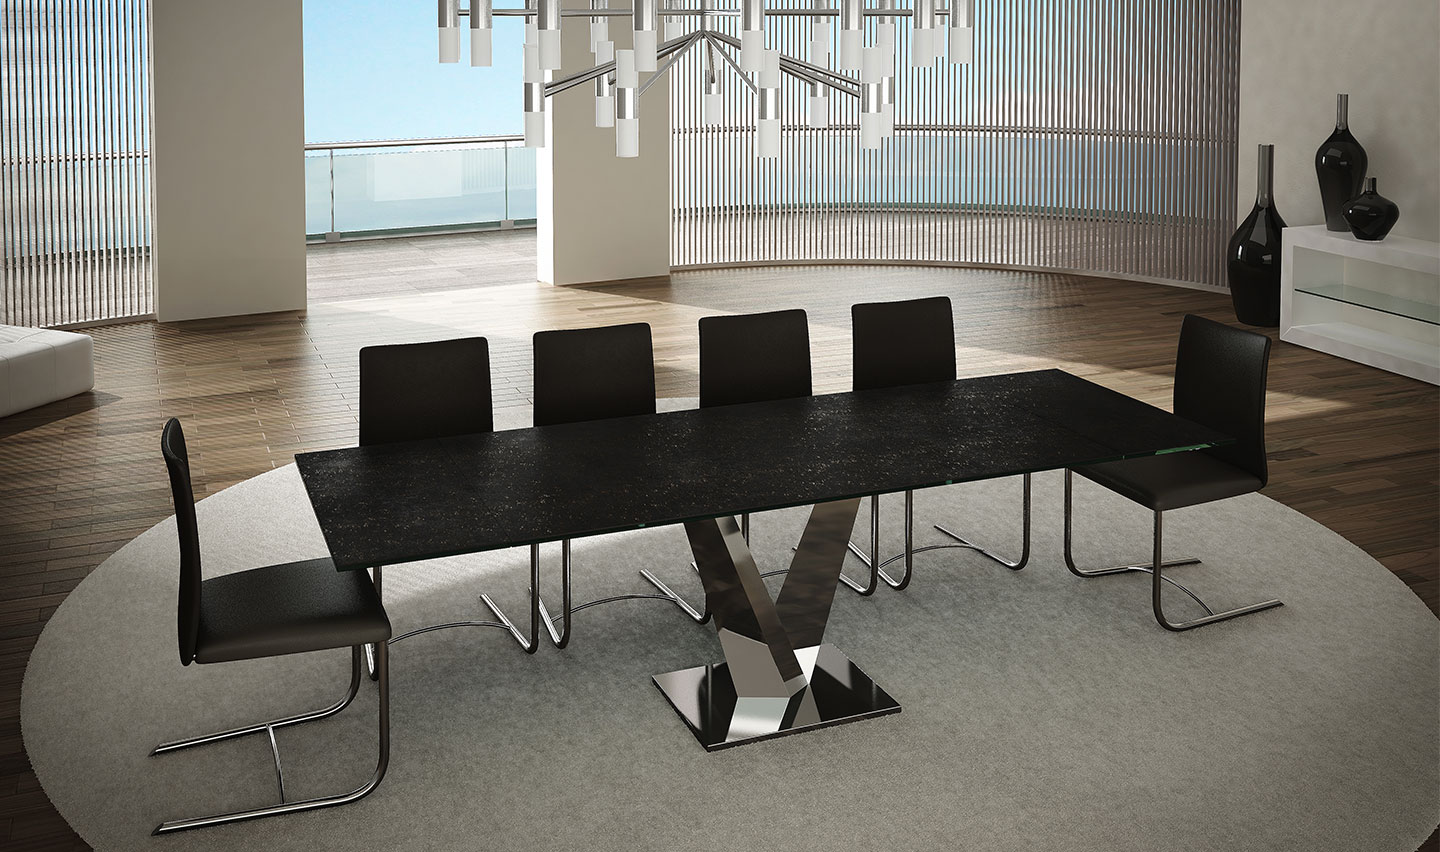 table minosse pardin lagreslepardin lagresle. Black Bedroom Furniture Sets. Home Design Ideas